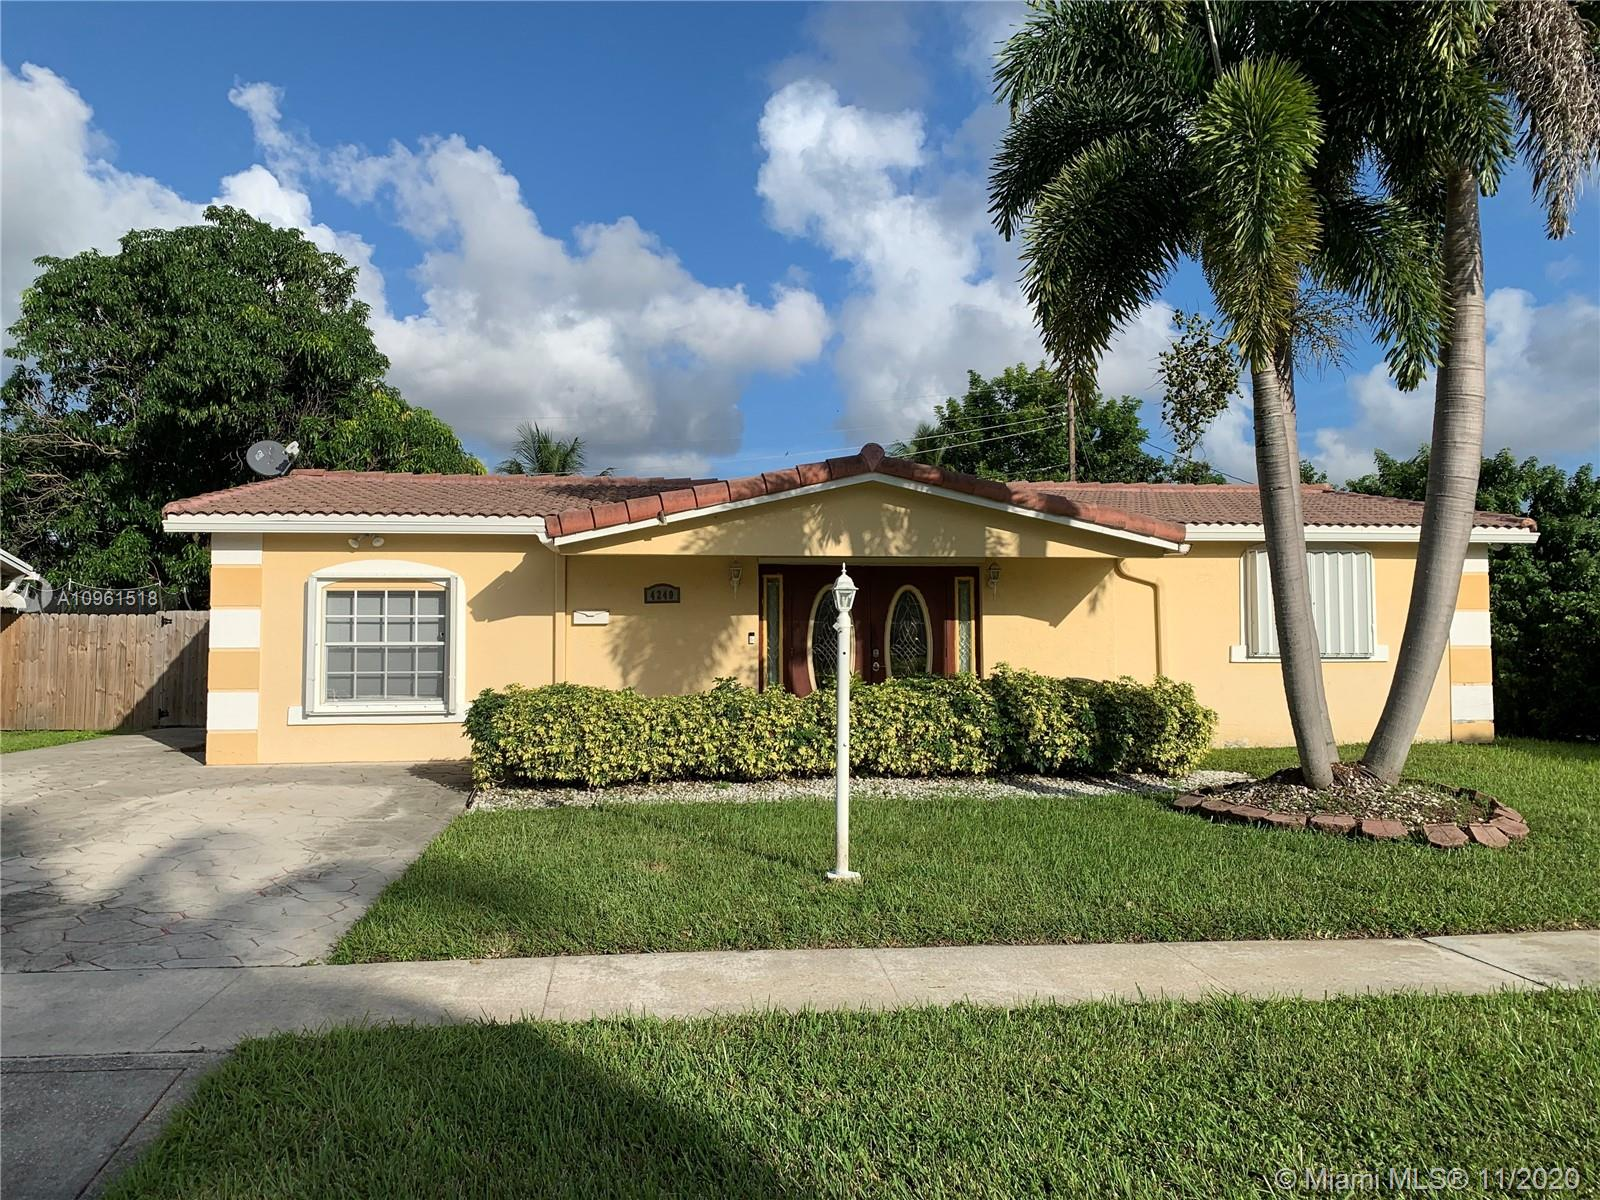 The only home for sale in charming Oriole Estates! Come see this lovely 3/2 home with bonus room that could easily be converted to a 4th bedroom! Beautiful curb appeal - nicely landscaped with foxtail trees, green shrubs and completely fenced yard - new automatic sprinkler pump. Accordian hurriance shutters on all windows and panels for front door (automatic insurance discount $$$). This home also features 5 Night Owl security cameras and dawn-to-dusk exterior lights for added peace of mind. New A/C with 10 year warranty and fridge recently installed. Tons of potential, just waiting on the right buyer to add their personal touch. This home will sell quickly, so call today for a showing!